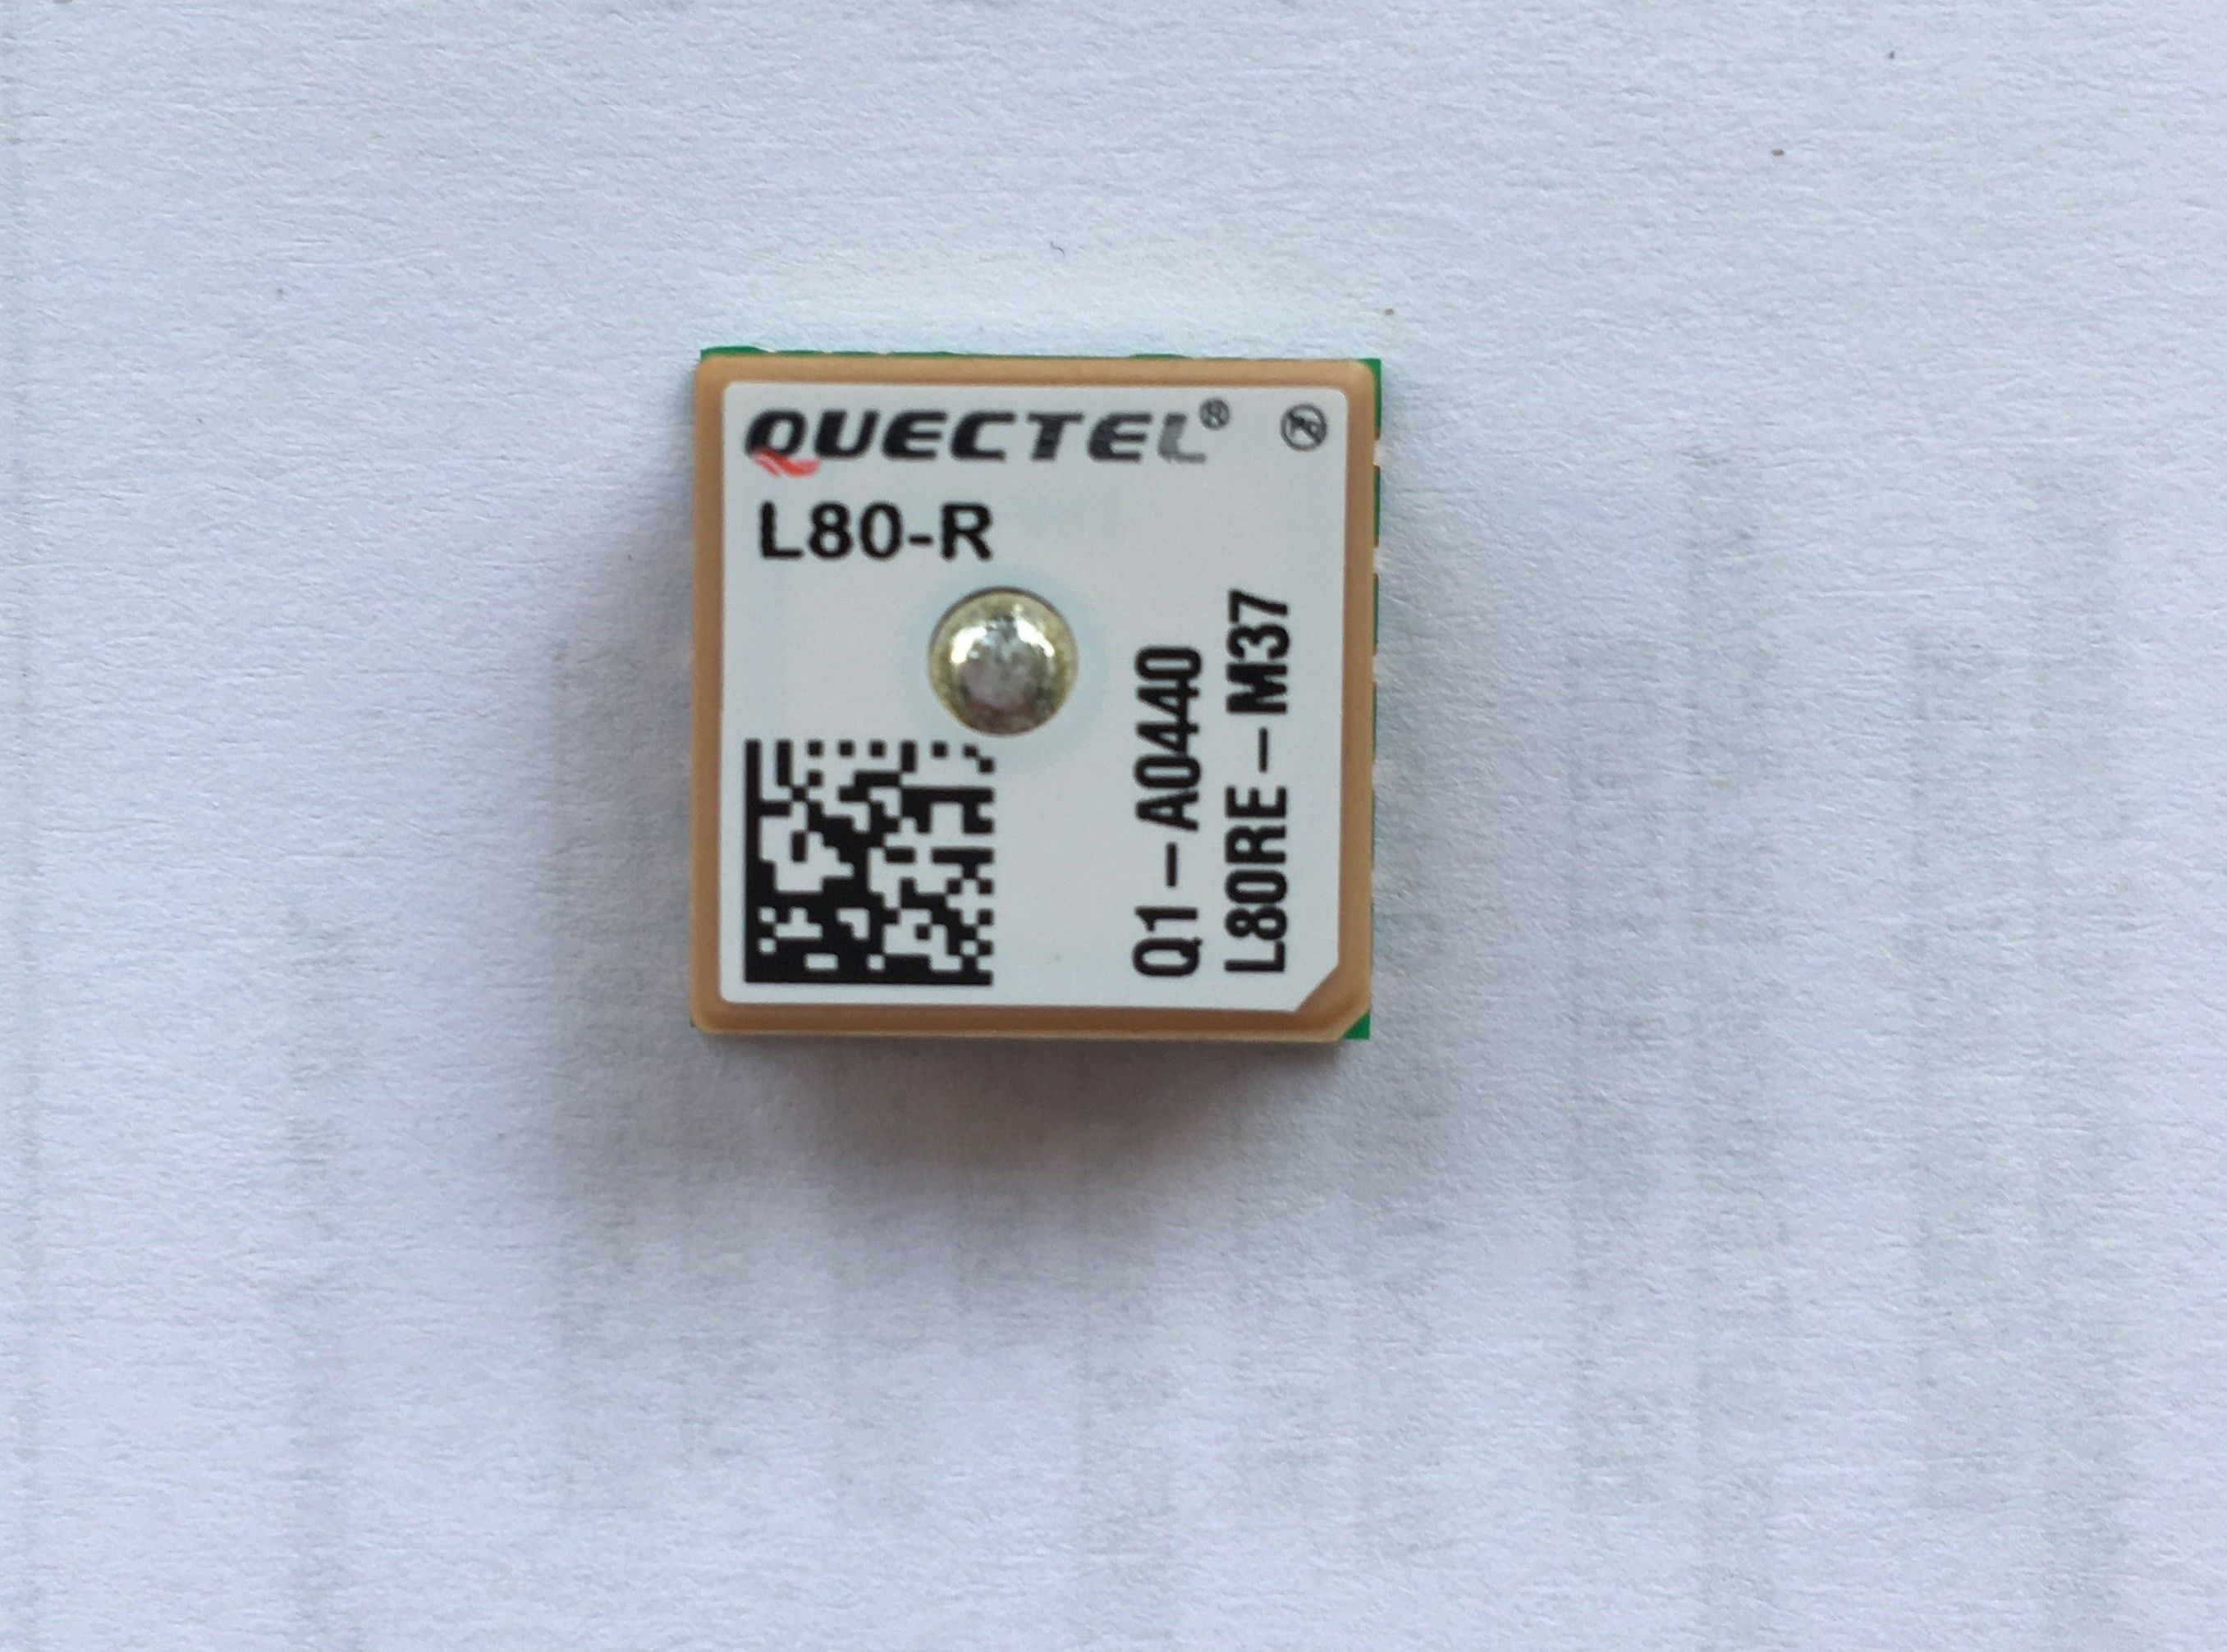 Quectel L80-R Compact GPS Module Integrated with Patch